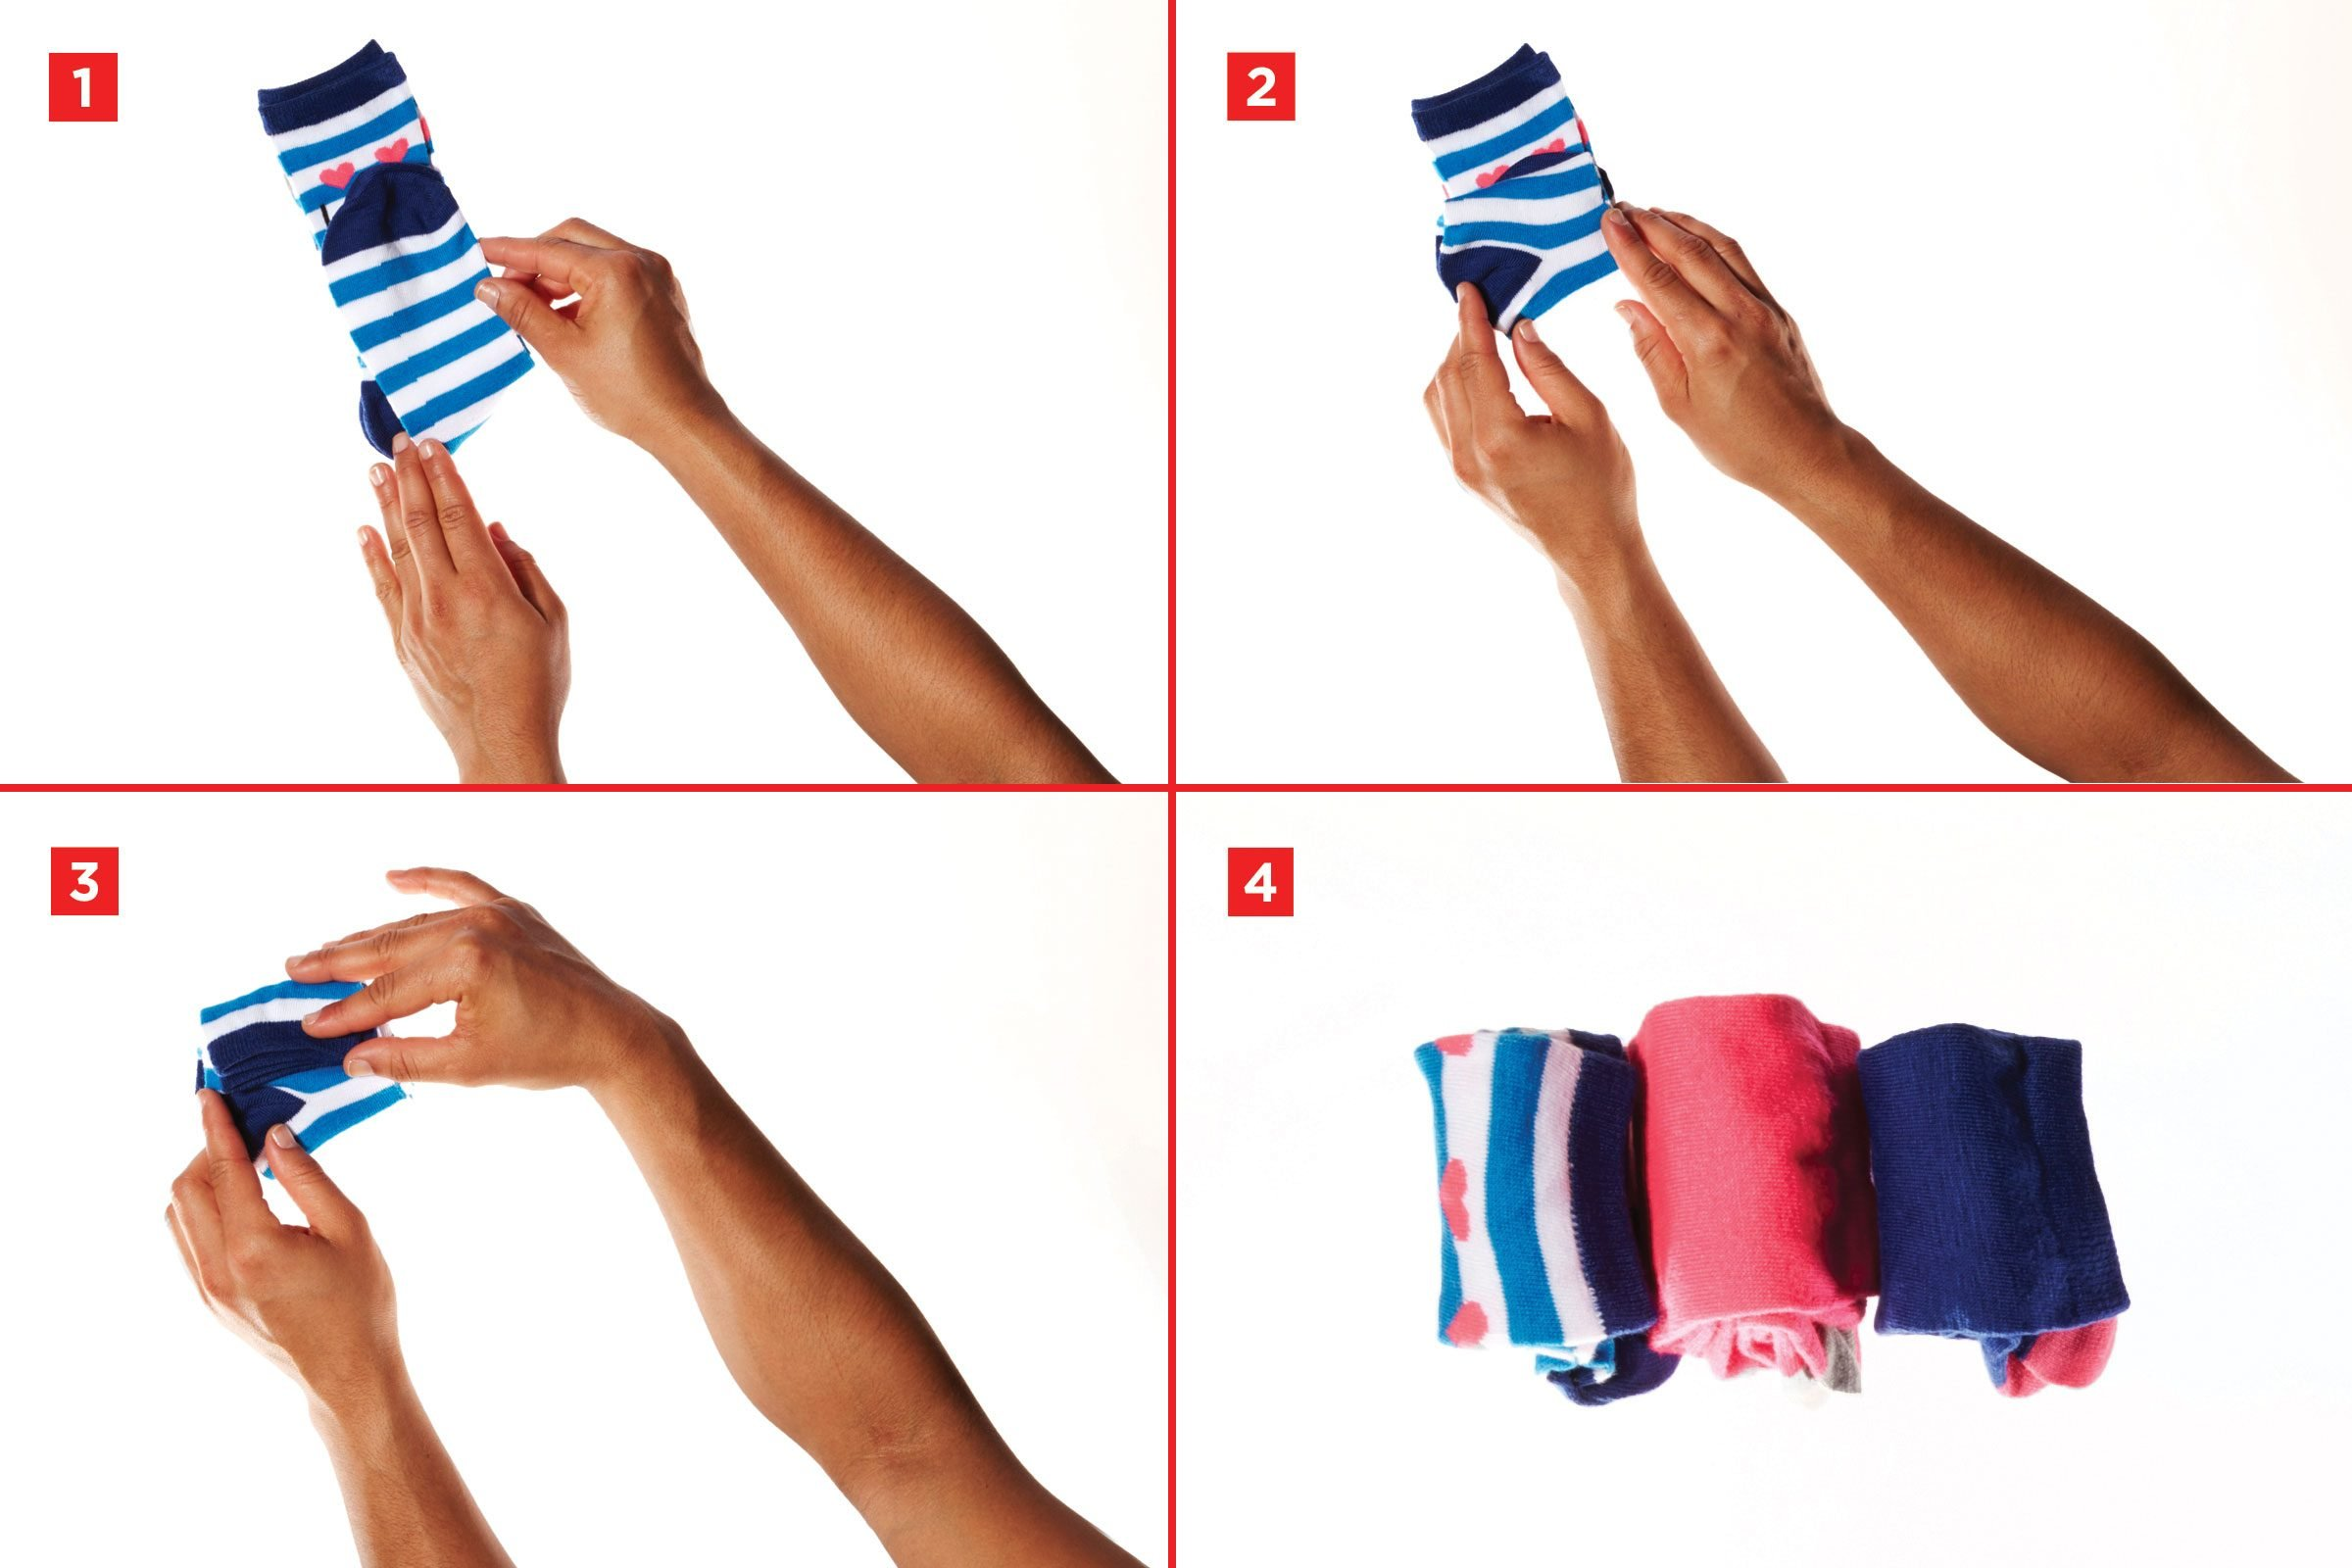 Best way to fold clothes for a trip - Socks